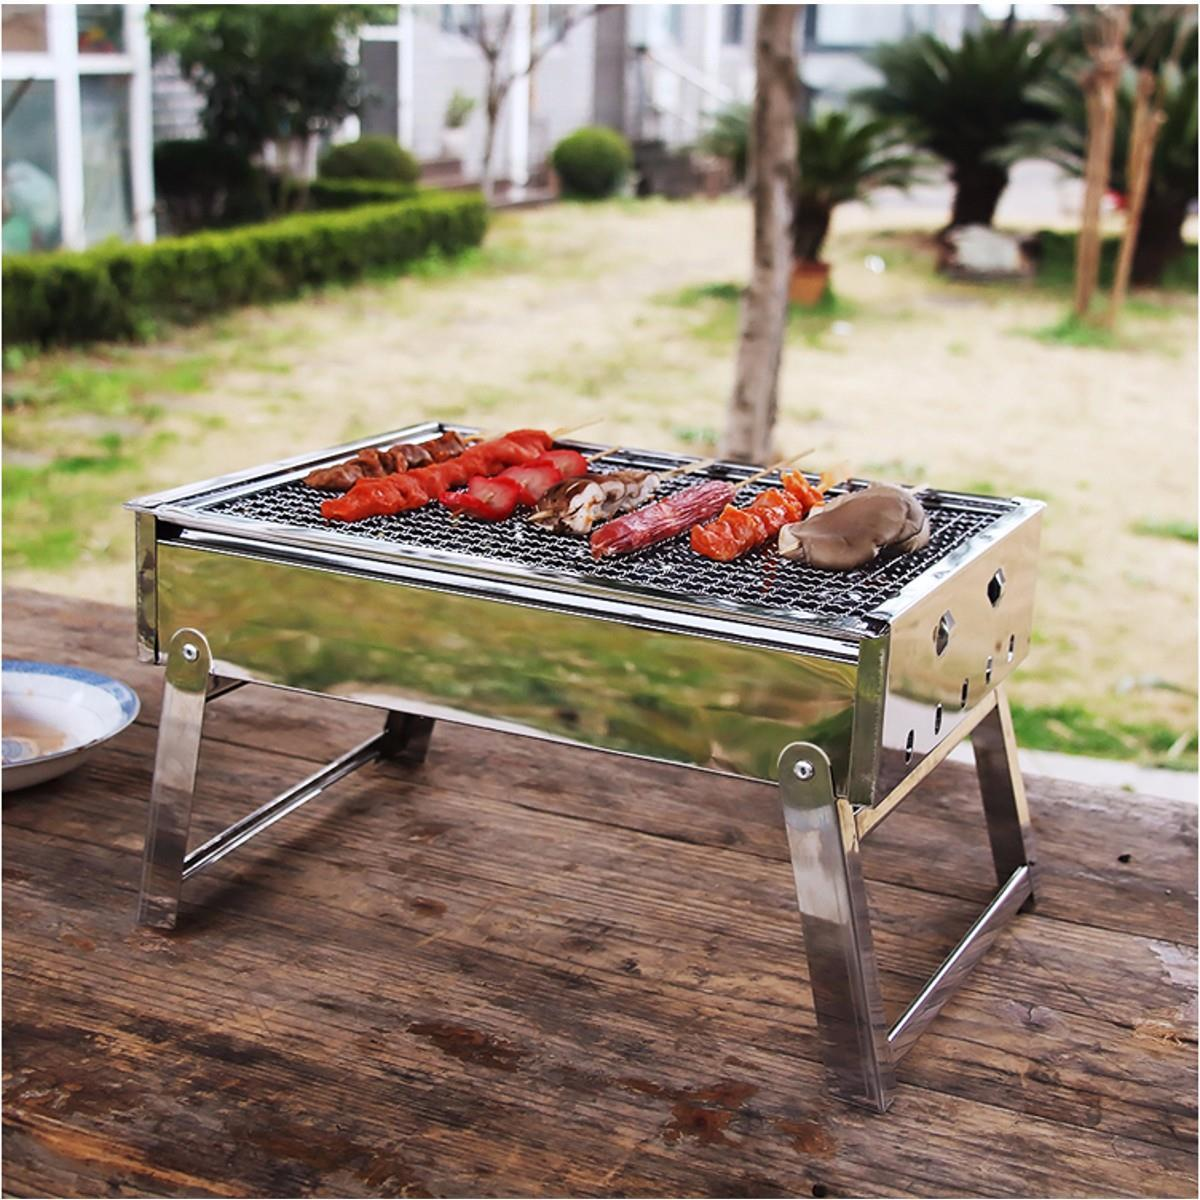 Portable Stainless Steel Charcoal Outdoor Grill - PropelGear